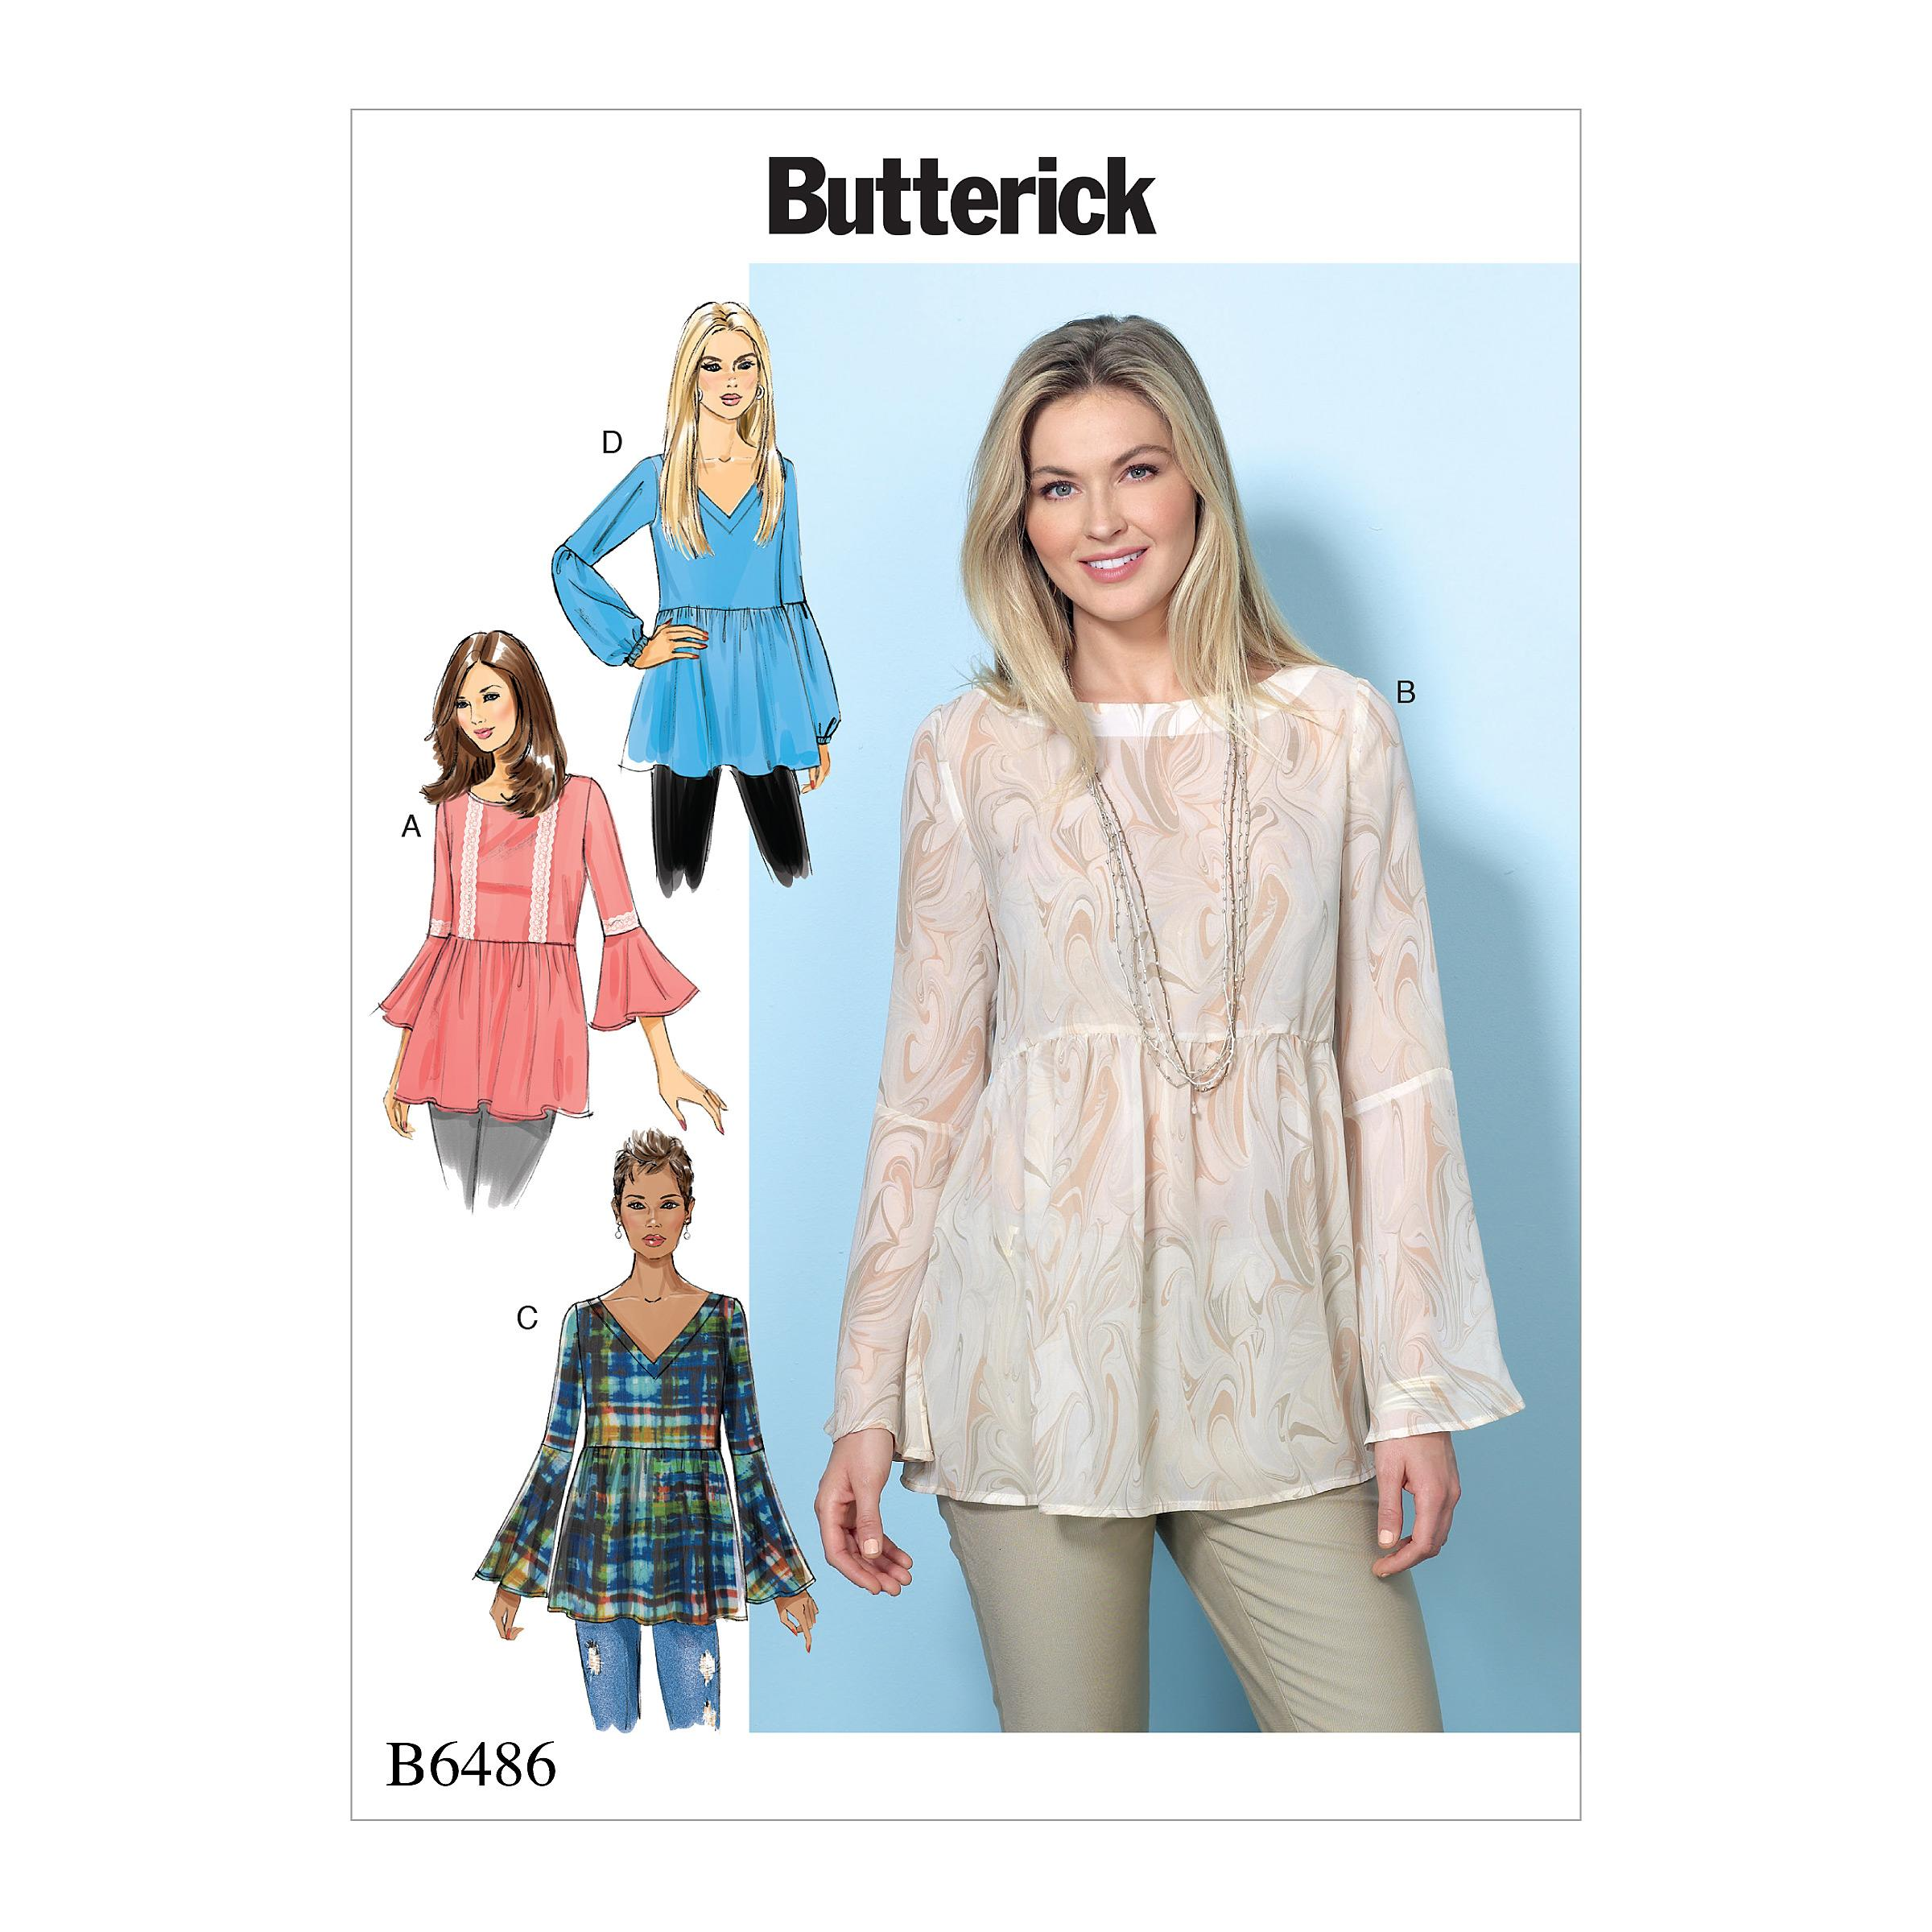 Butterick B6486 Misses' Loose-Fitting, Gathered Waist Pullover Tops with Bell Sleeves